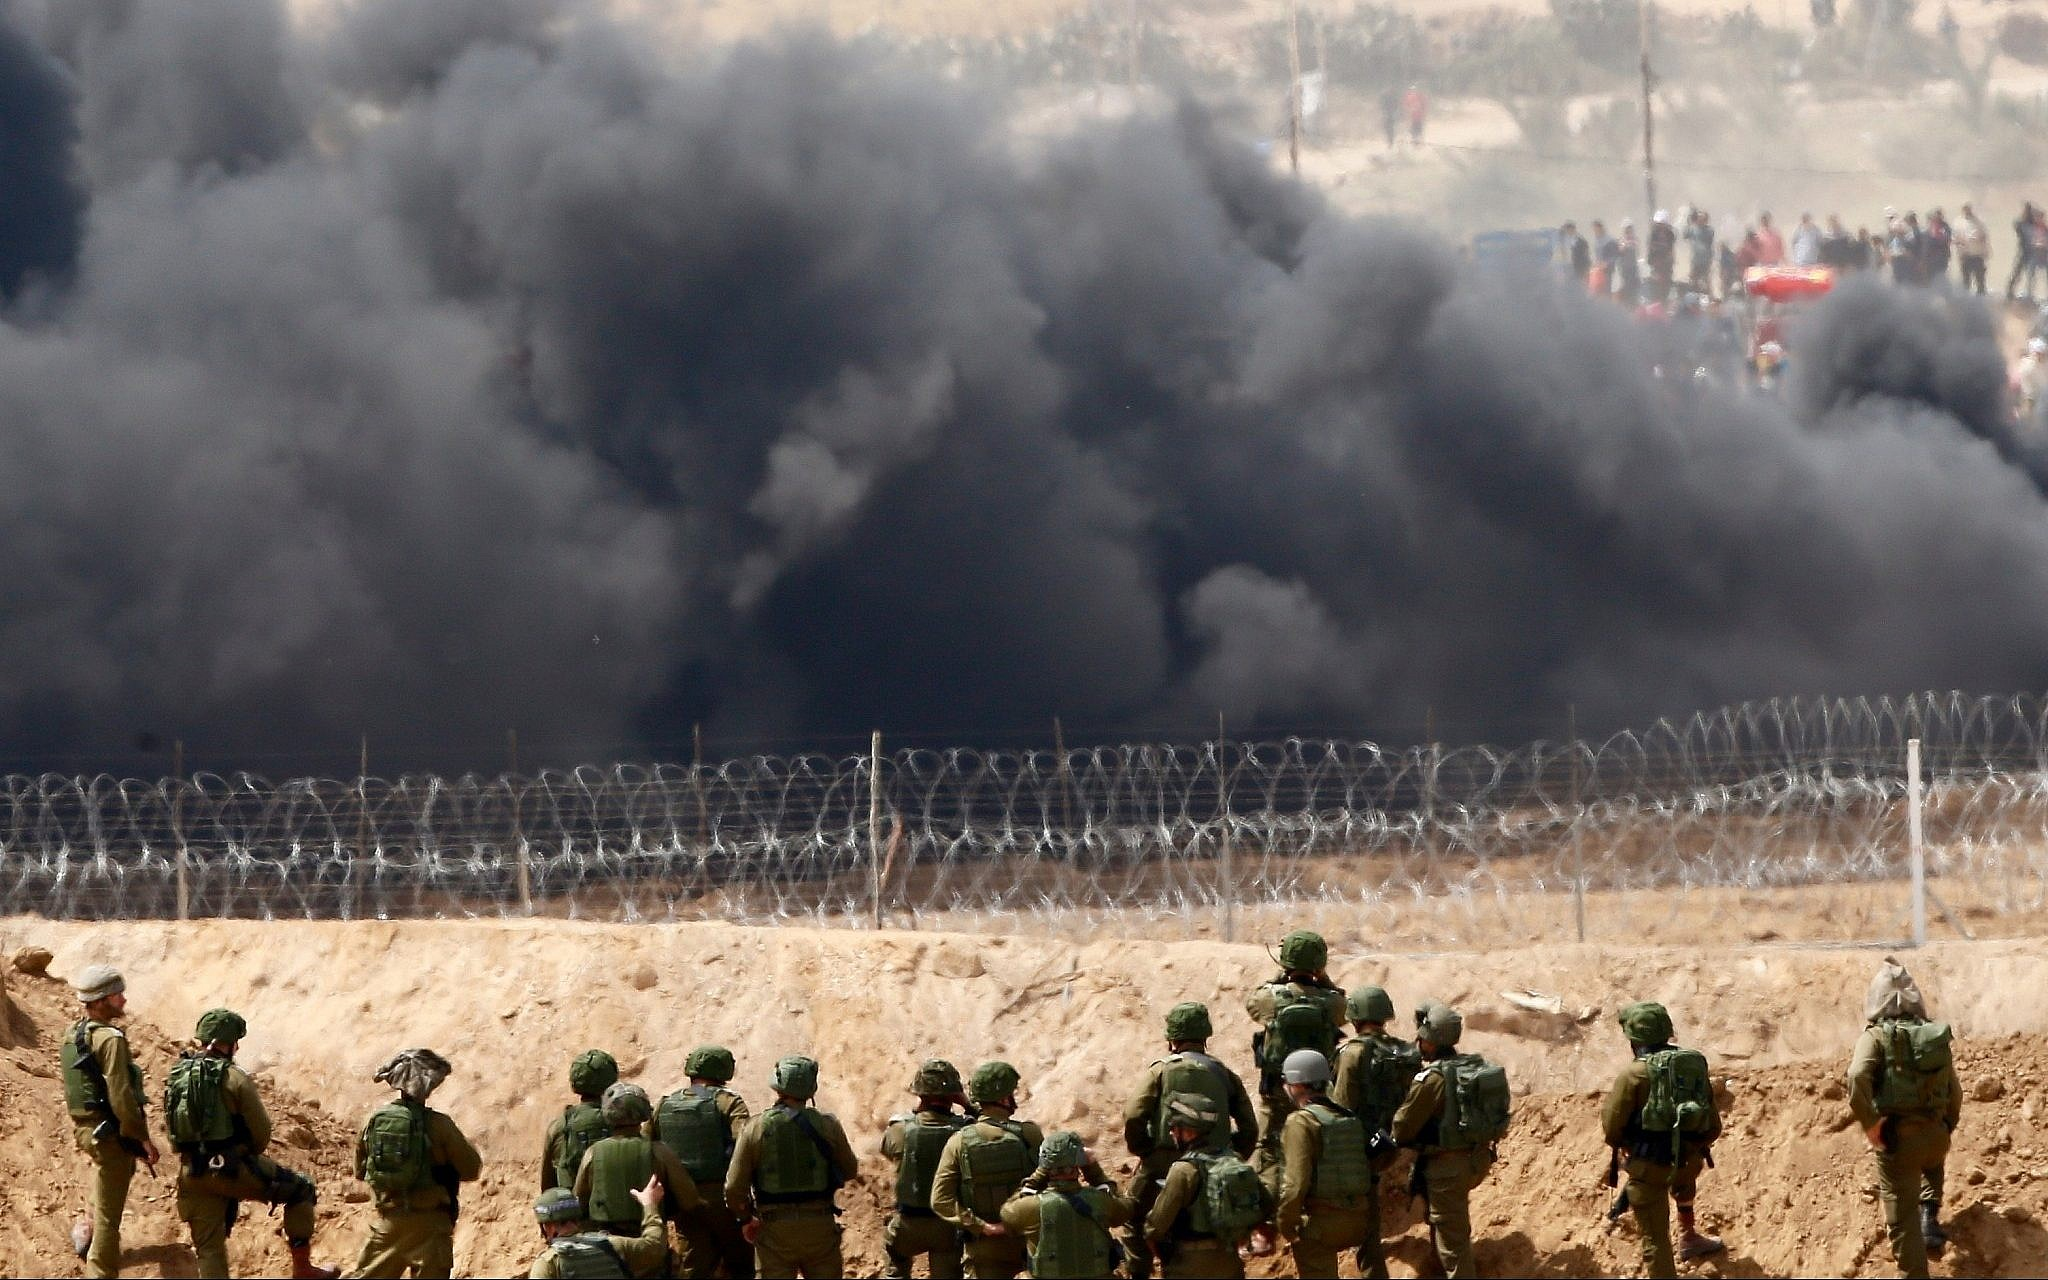 I was at the Gaza border, we did all we could to avoid killing